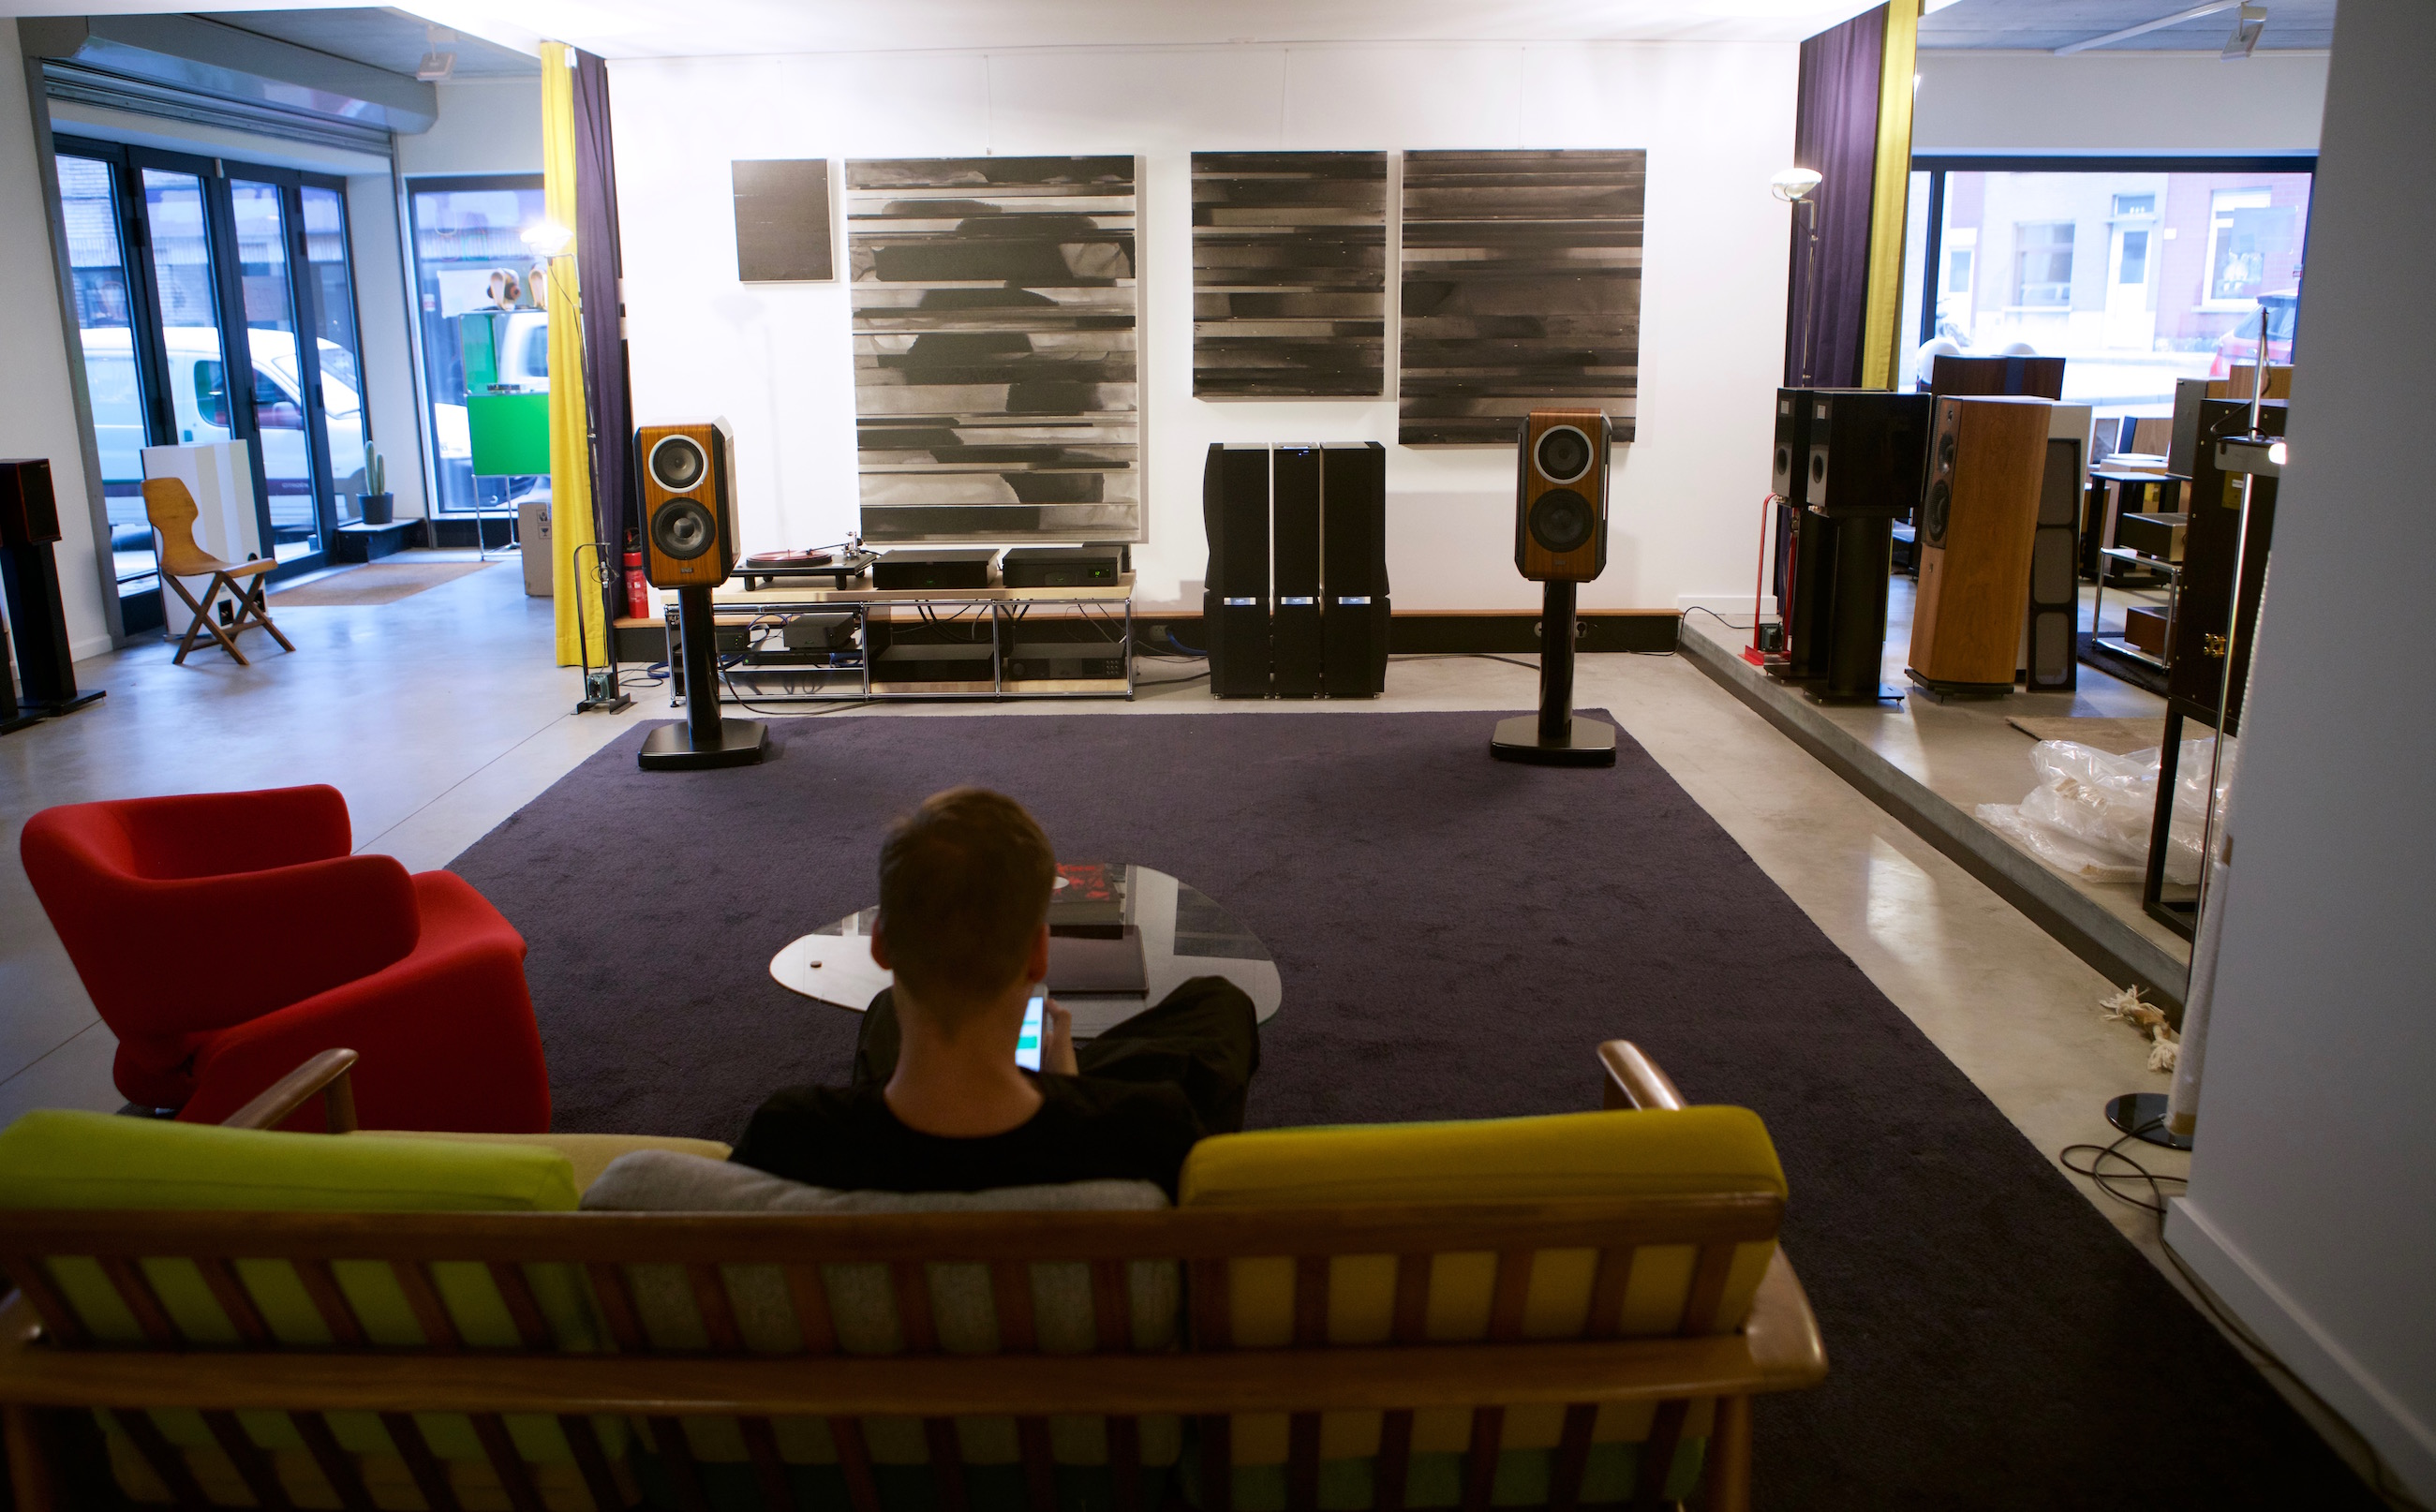 Naim STATEMENT SESSIONS - 8-9 OCT 2016 at Wide Screen Audio